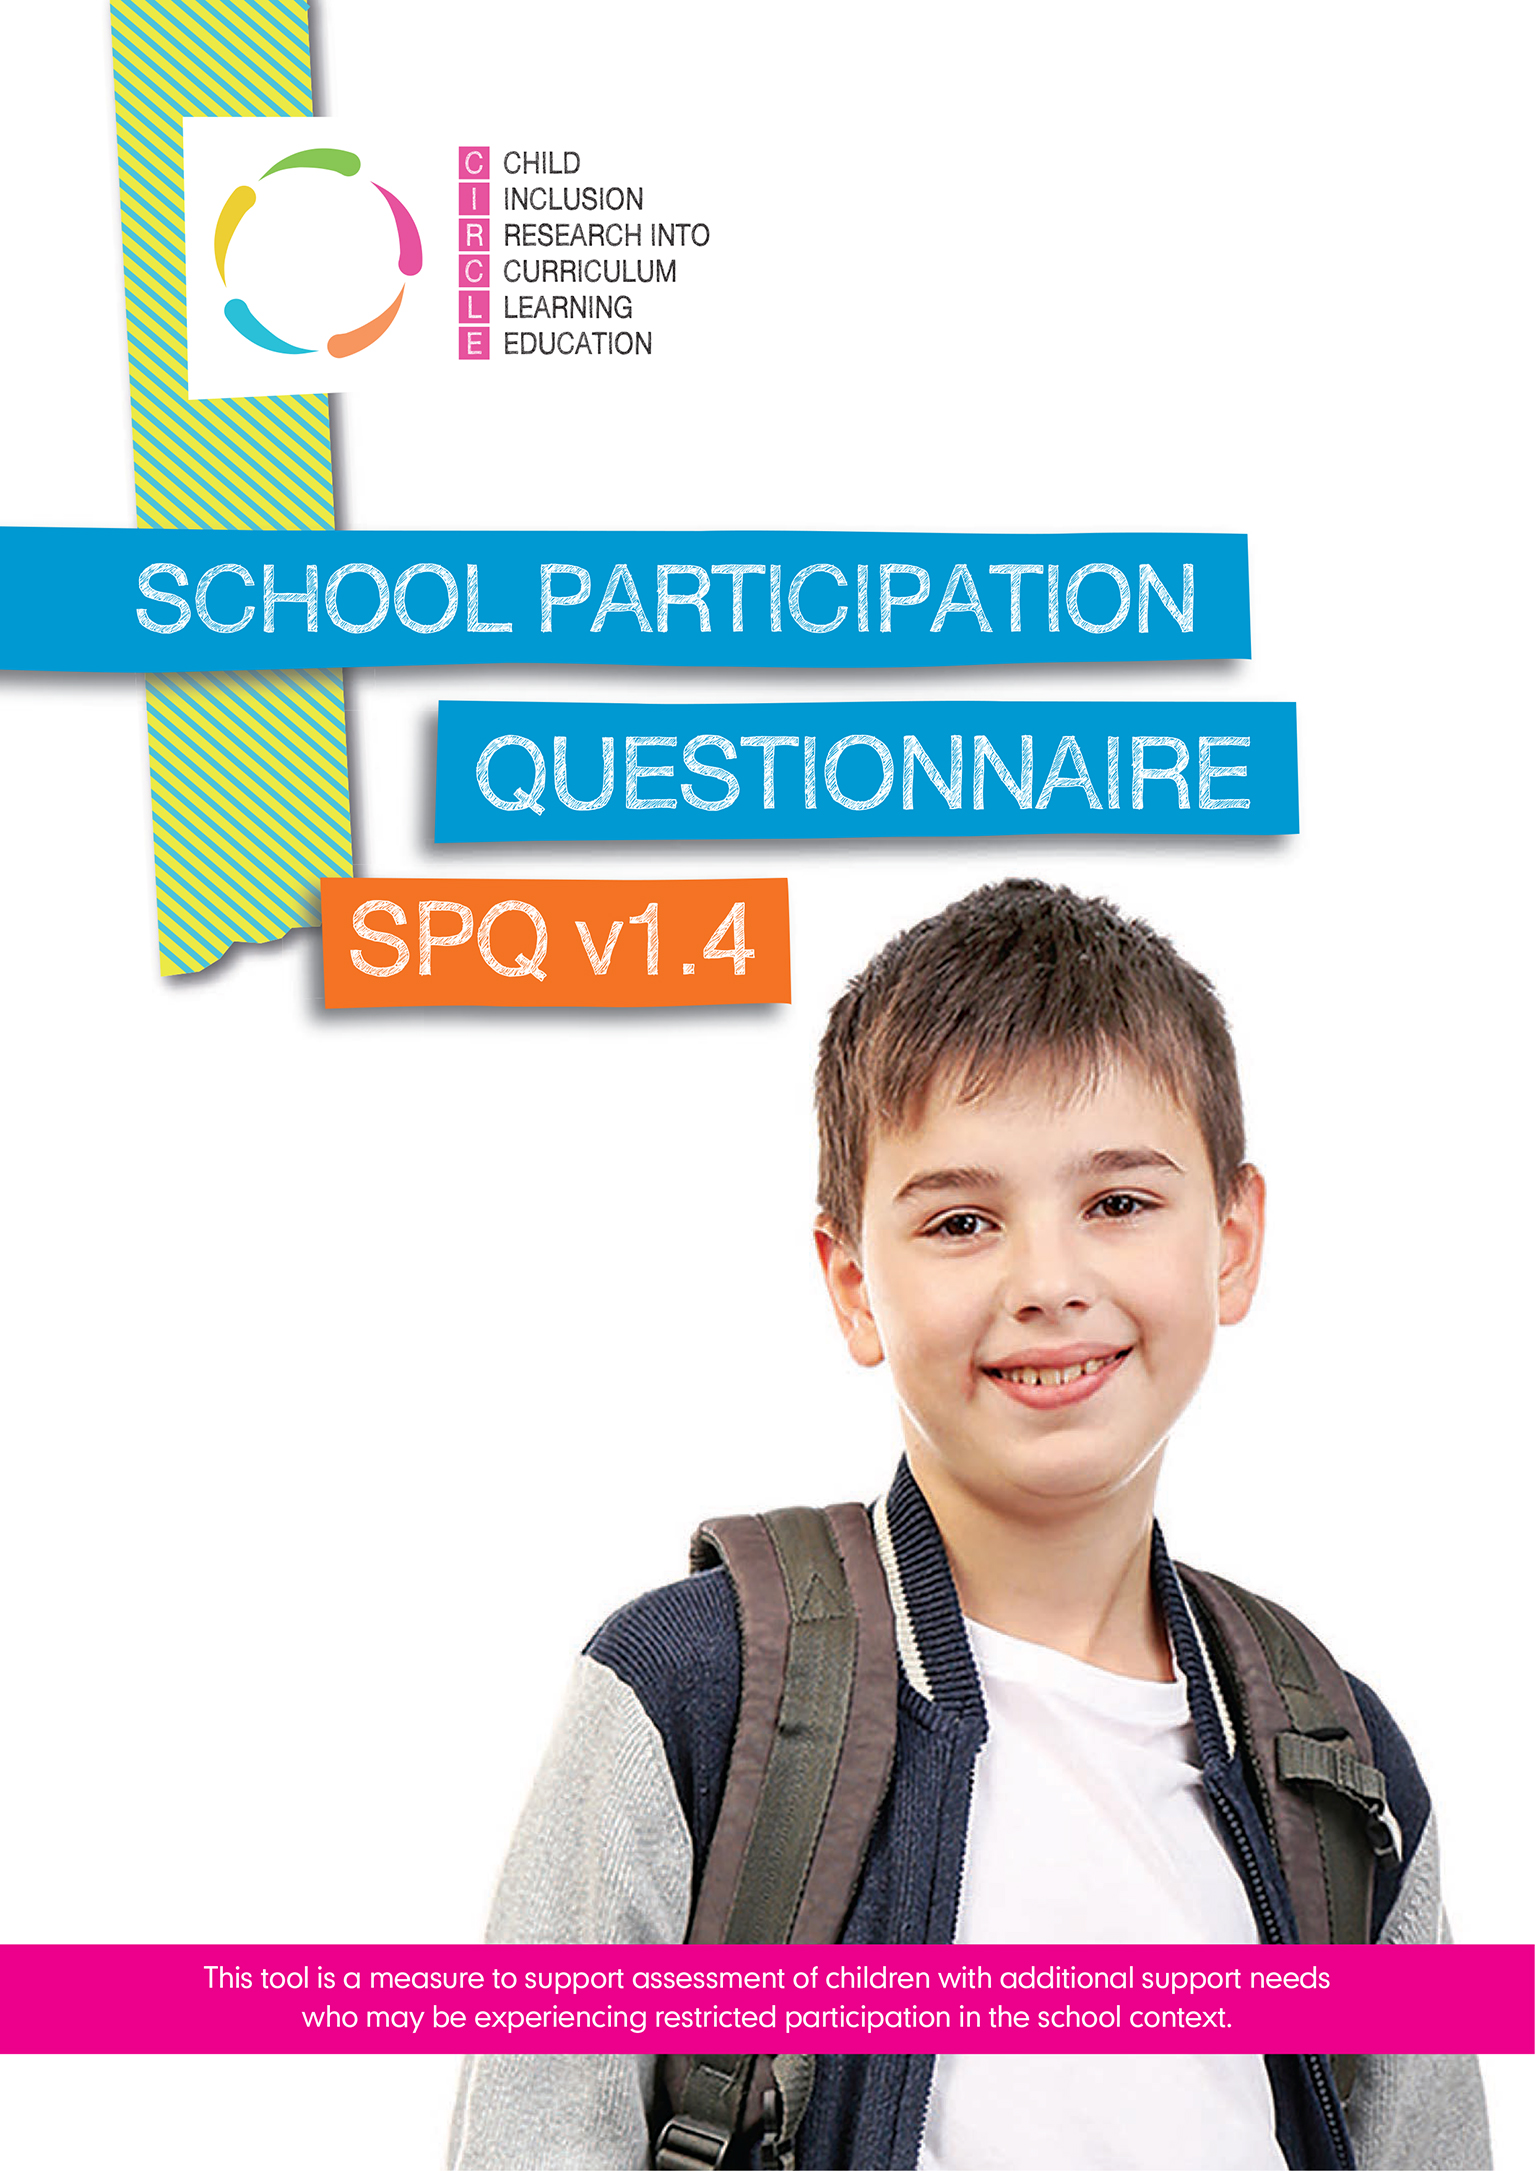 CIRCLE: School Participation Questionnaire